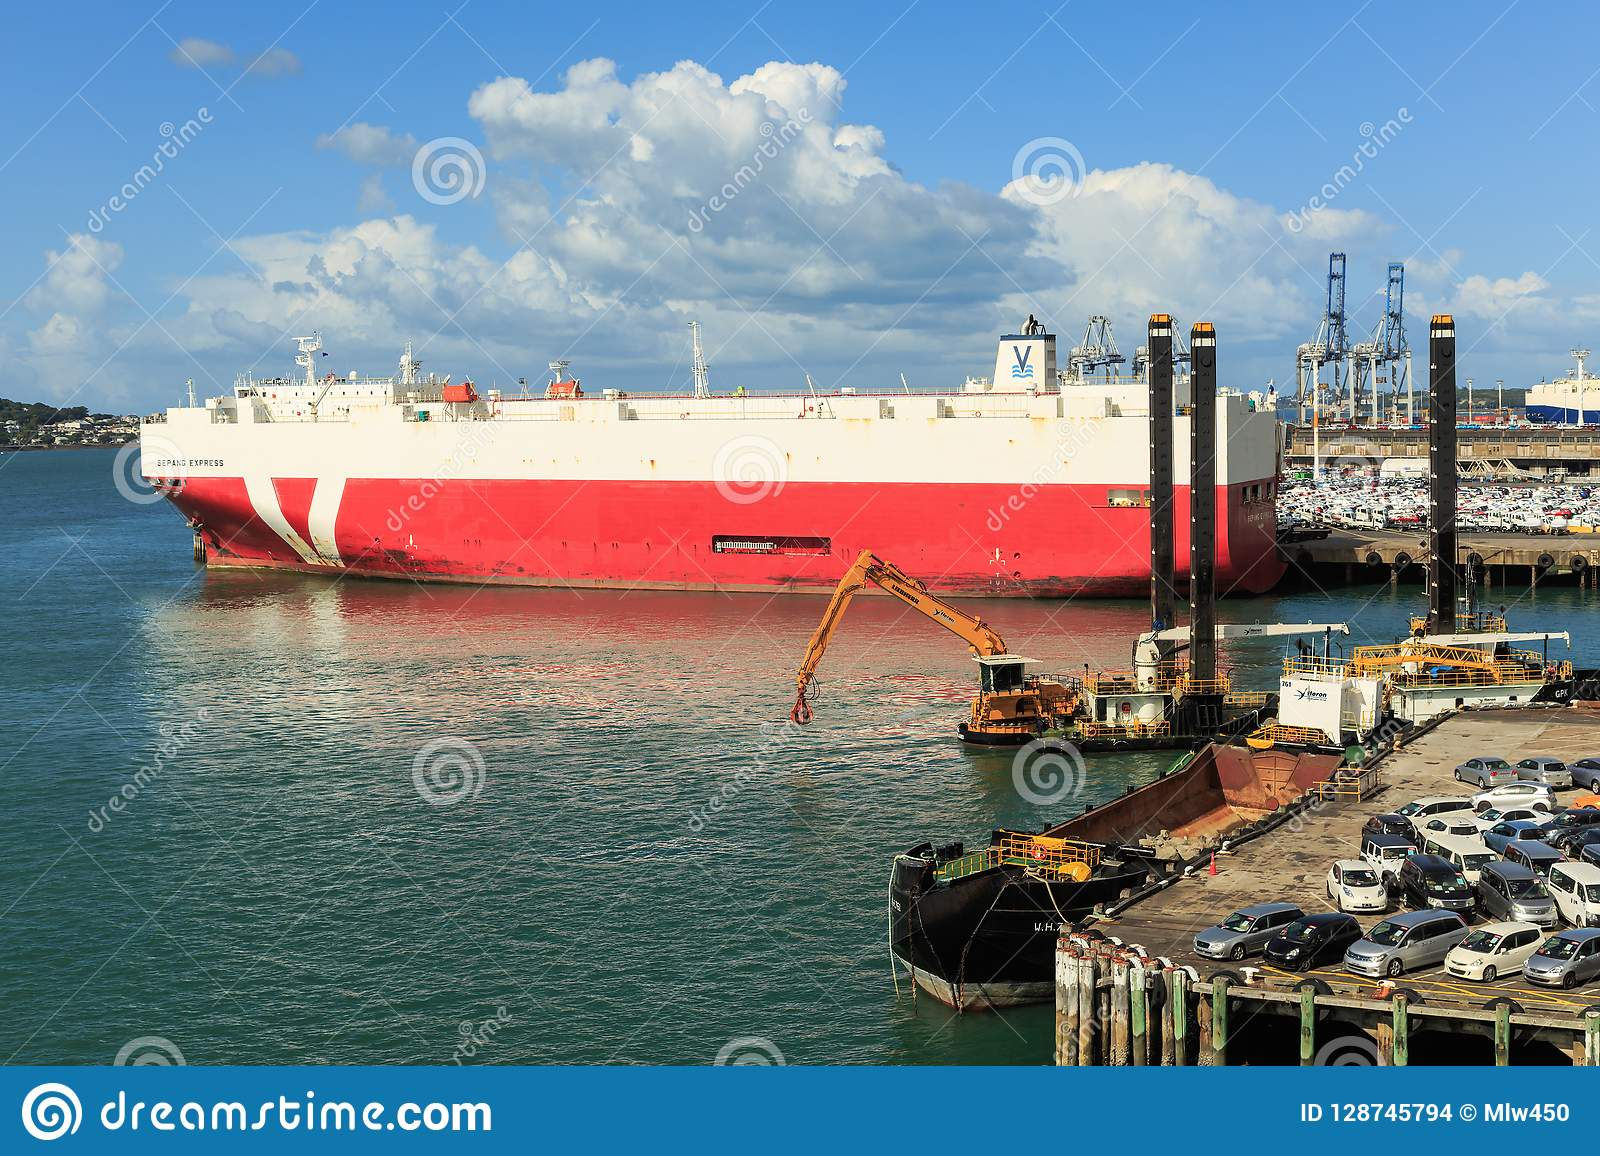 The Port of Auckland, New Zealand, with a huge vehicle carrier ship